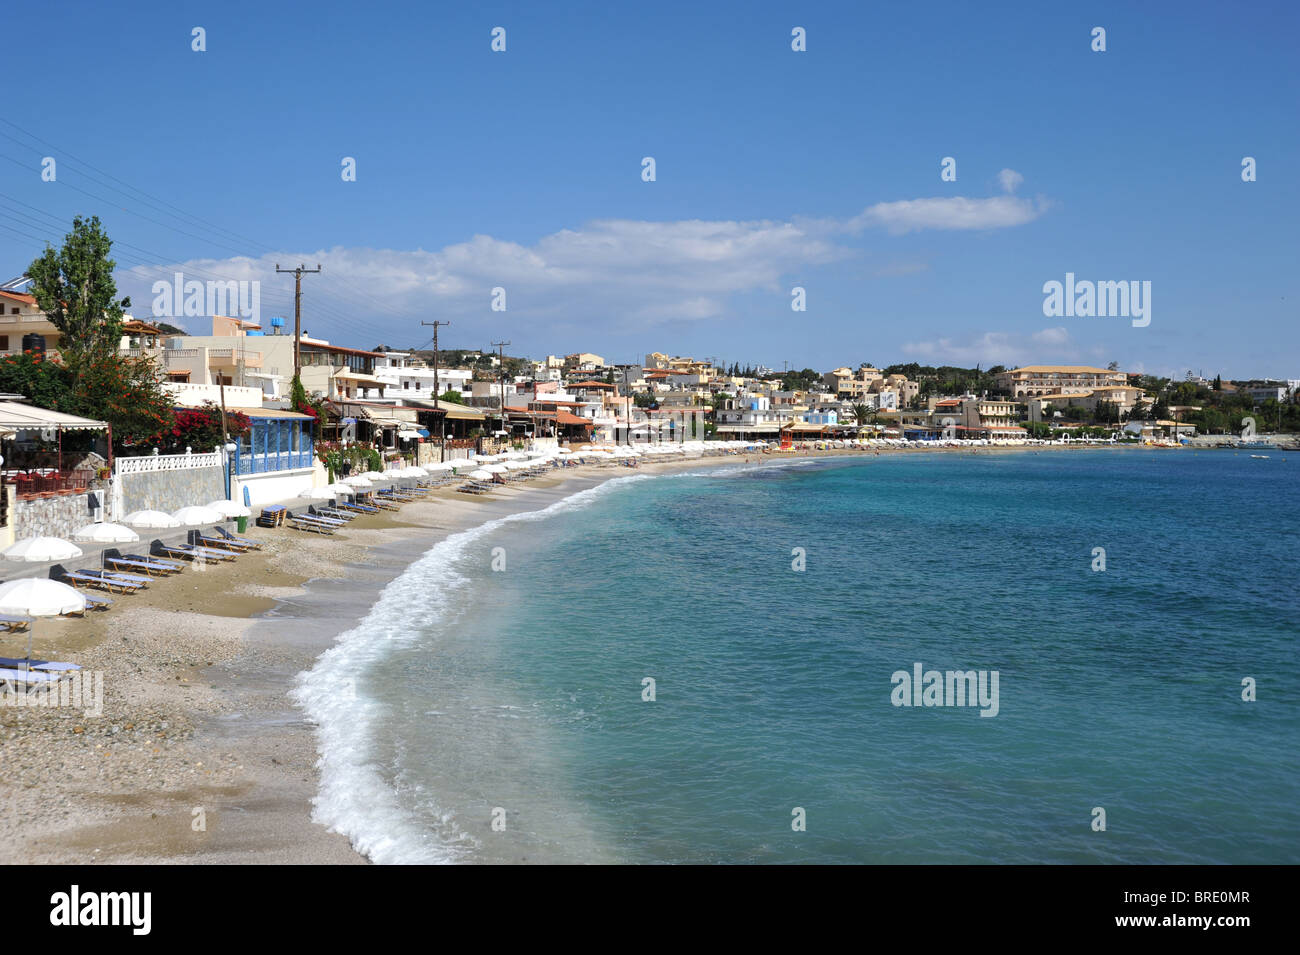 Beach and seafront at Agia Pelagia, Crete, Greece - Stock Image